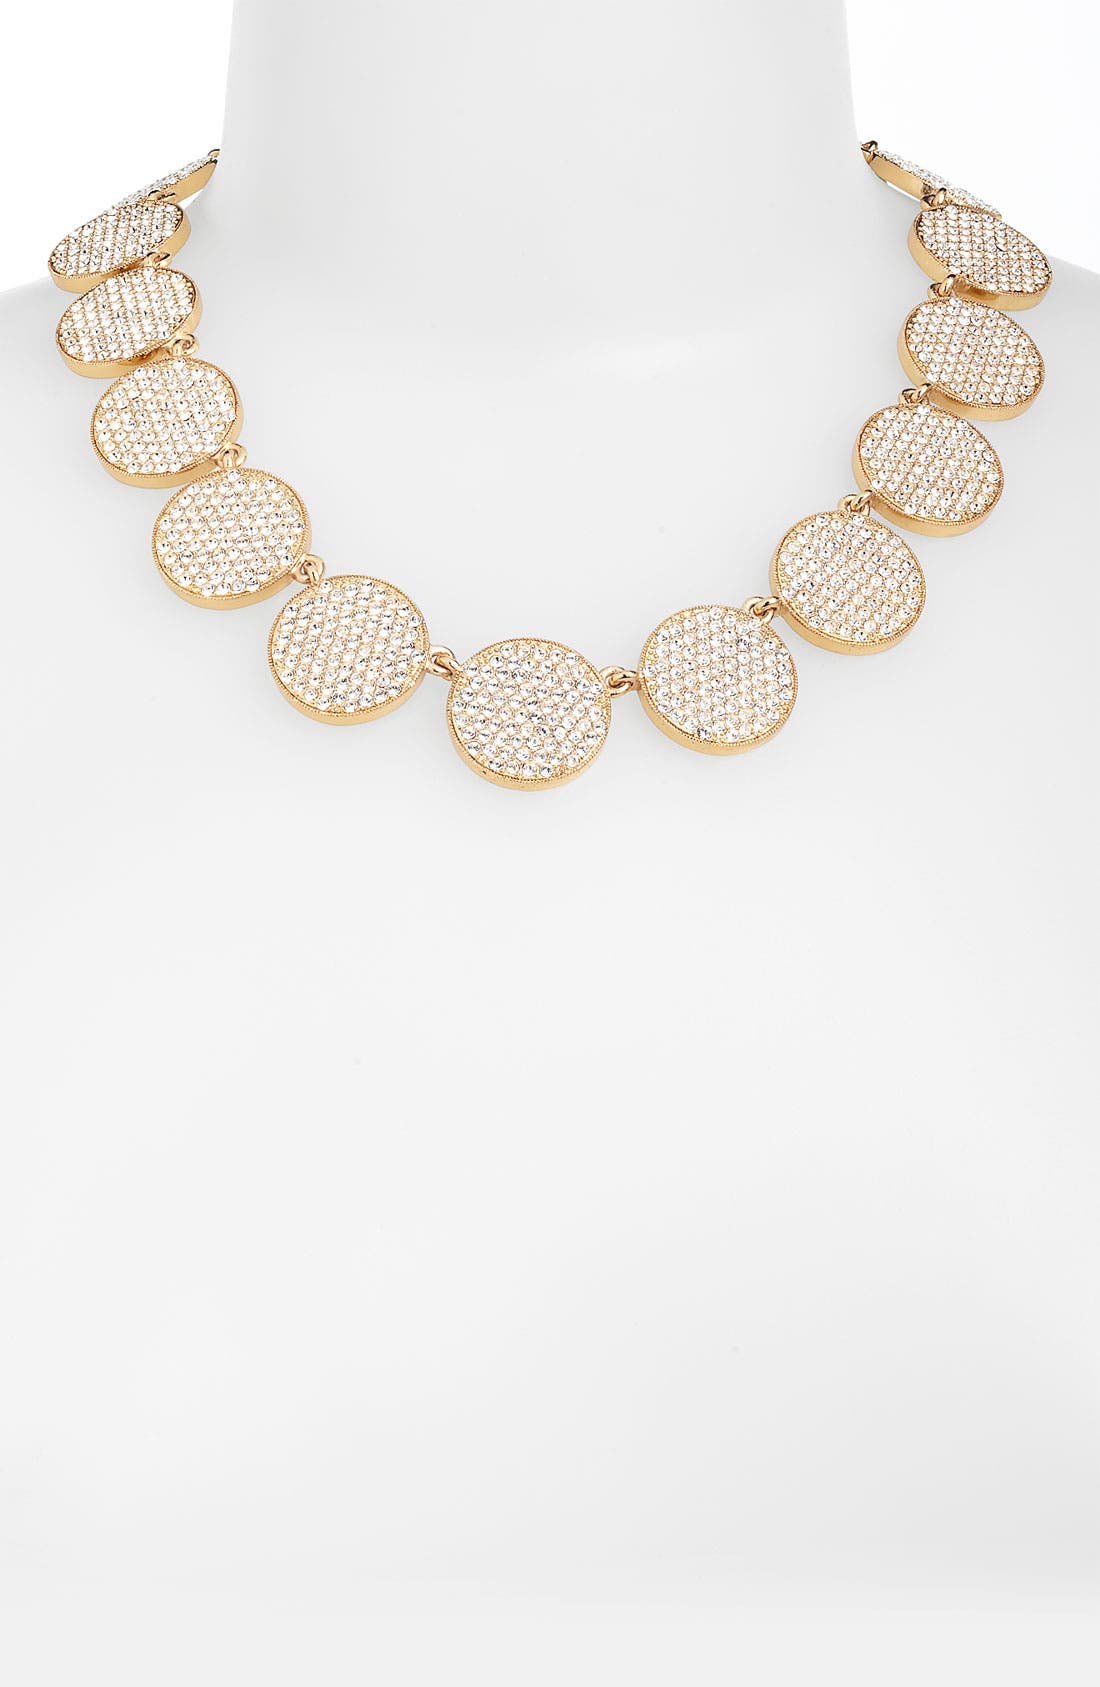 Main Image - kate spade new york 'bright spot' collar necklace